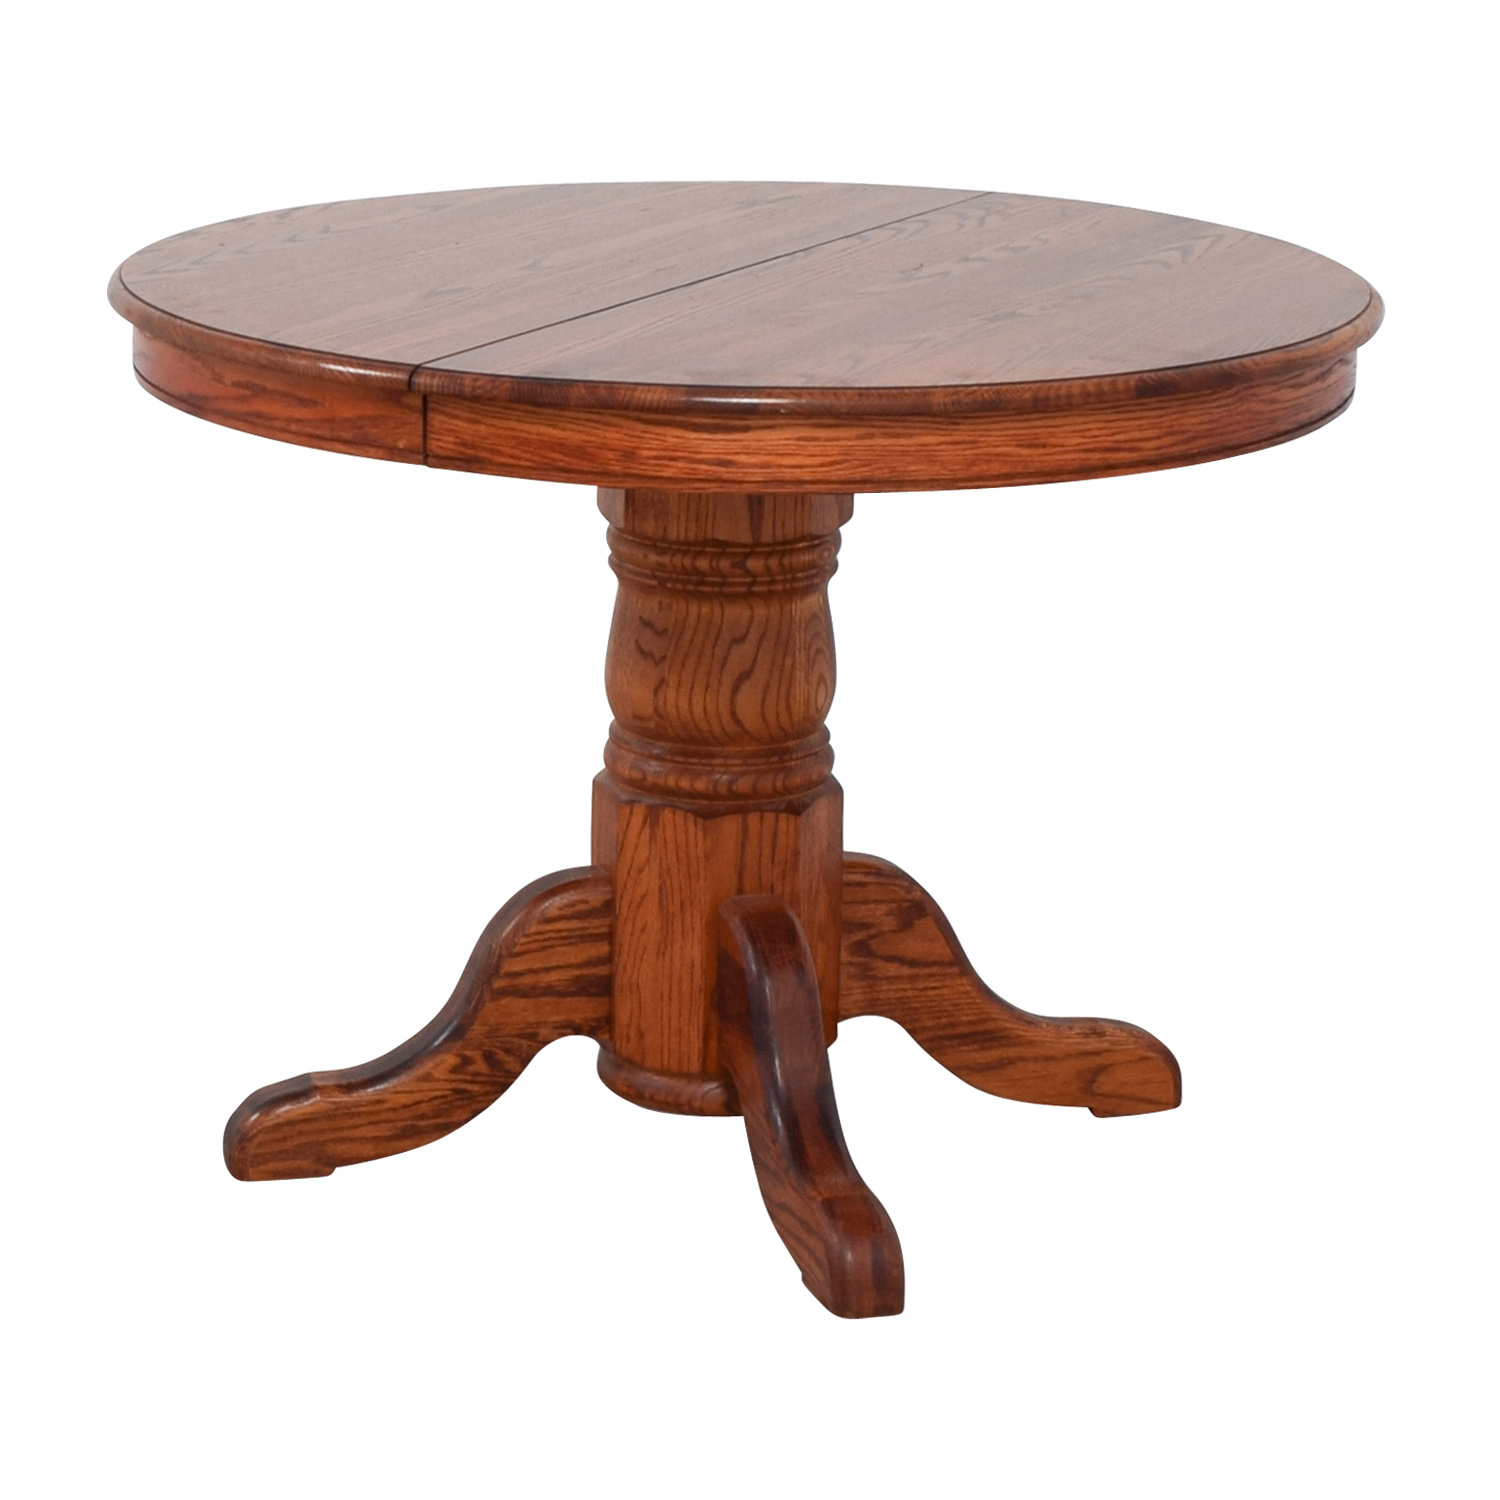 76 off custom extendable oak round dining table tables. Black Bedroom Furniture Sets. Home Design Ideas